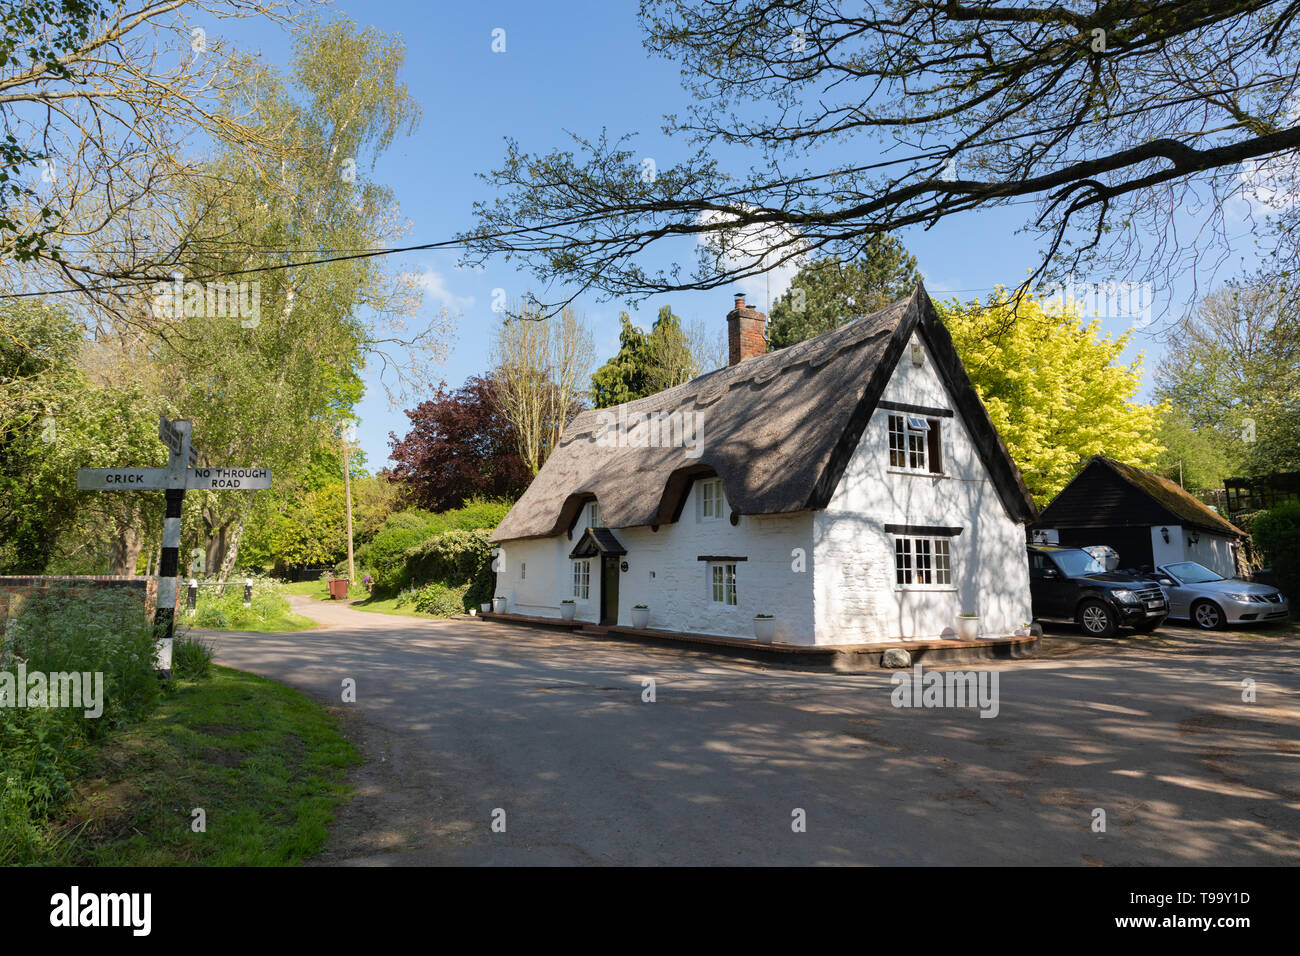 Bridge Cottage, a picturesque, Grade II listed, thatched building stands at a crossroads in the small and pretty Northamptonshire village of Winwick. - Stock Image